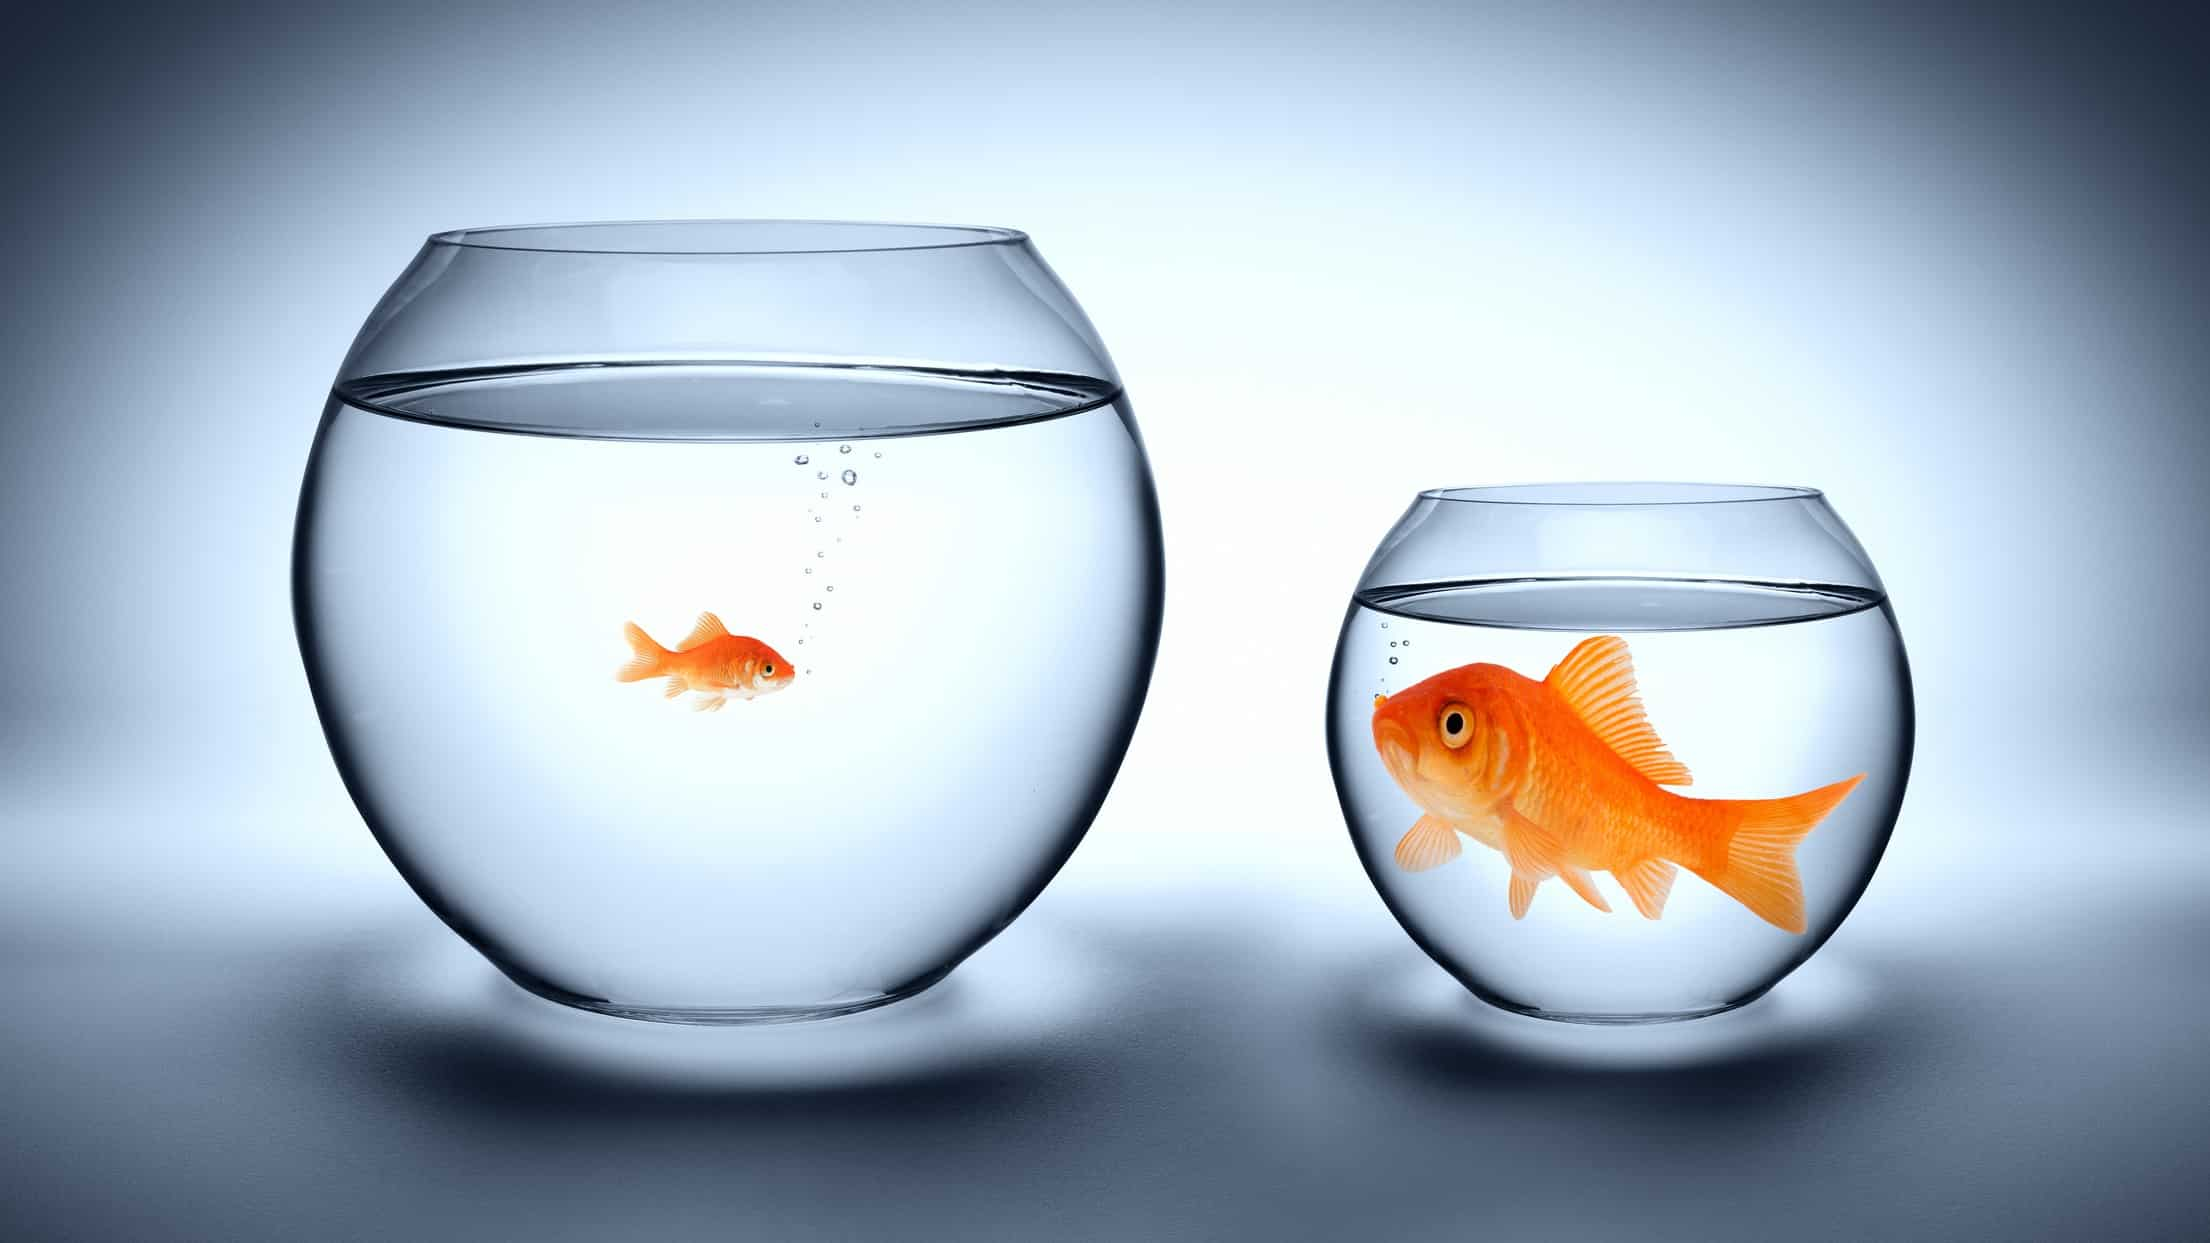 a small fish in a big bowl eyeballs a big fish in a small bowl, indicating the biggest companies are npt always the best investments